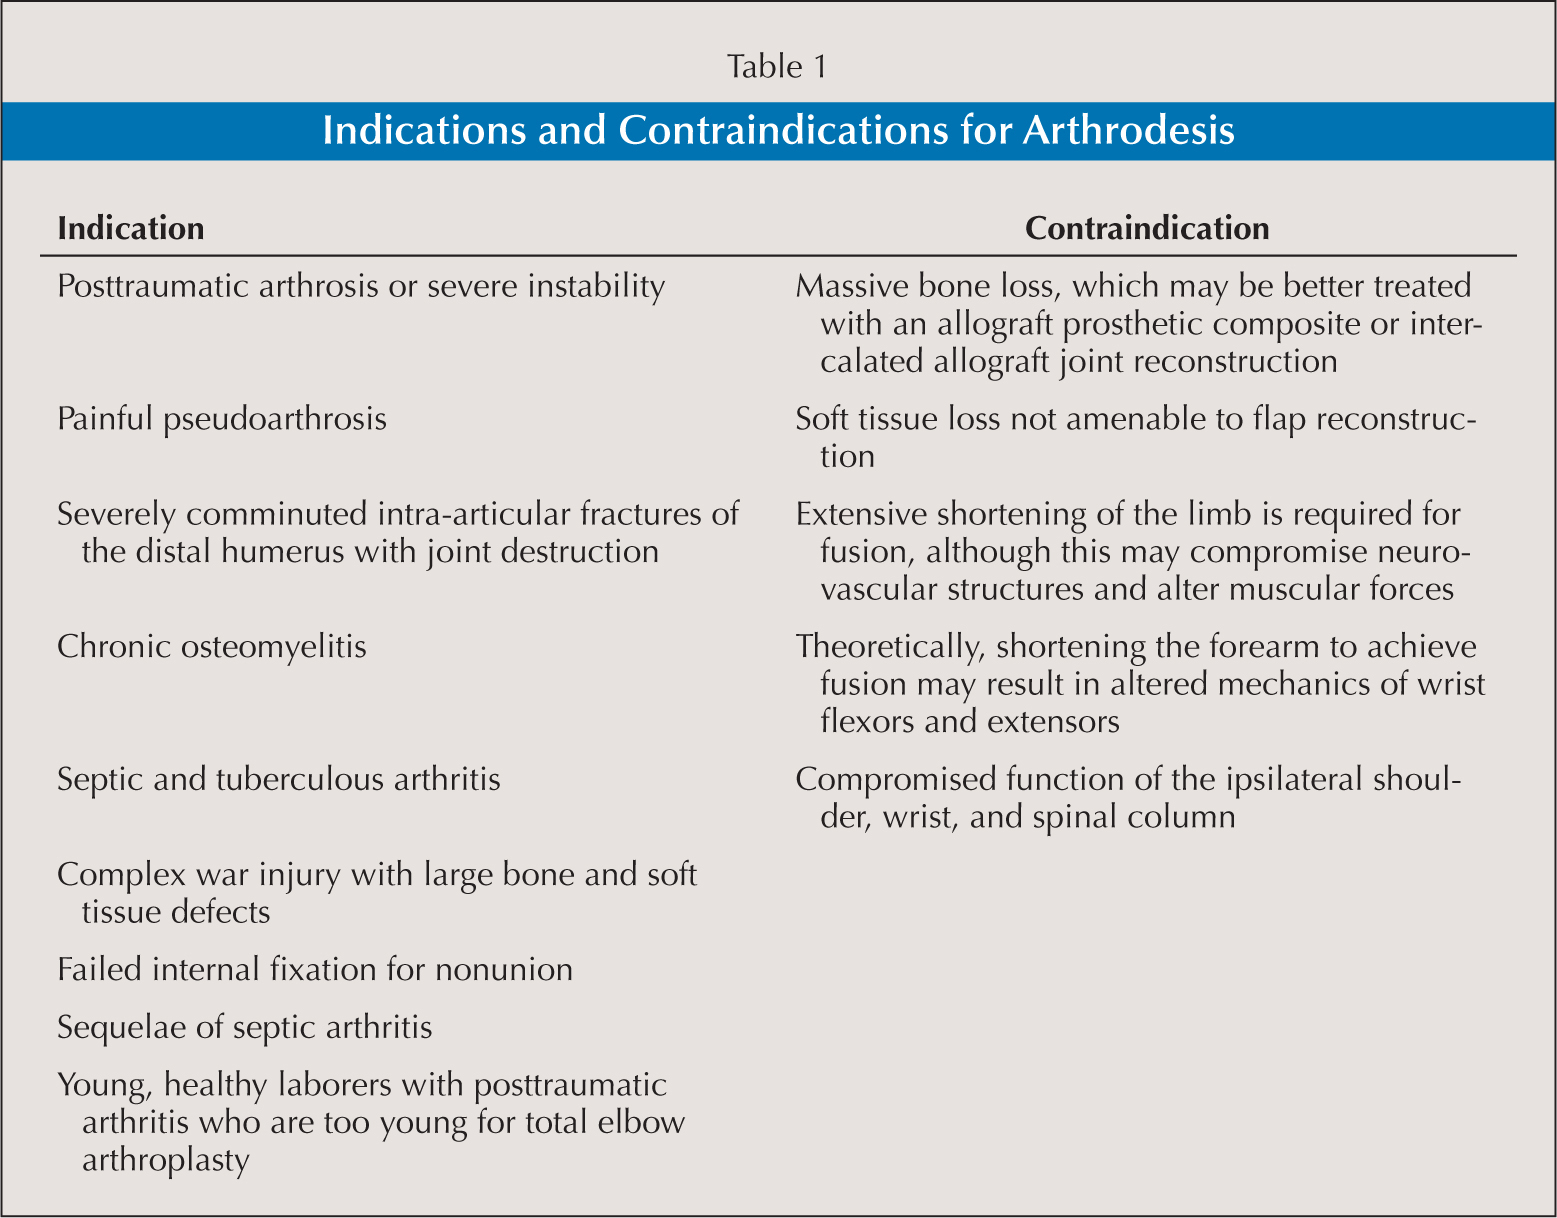 Indications and Contraindications for Arthrodesis